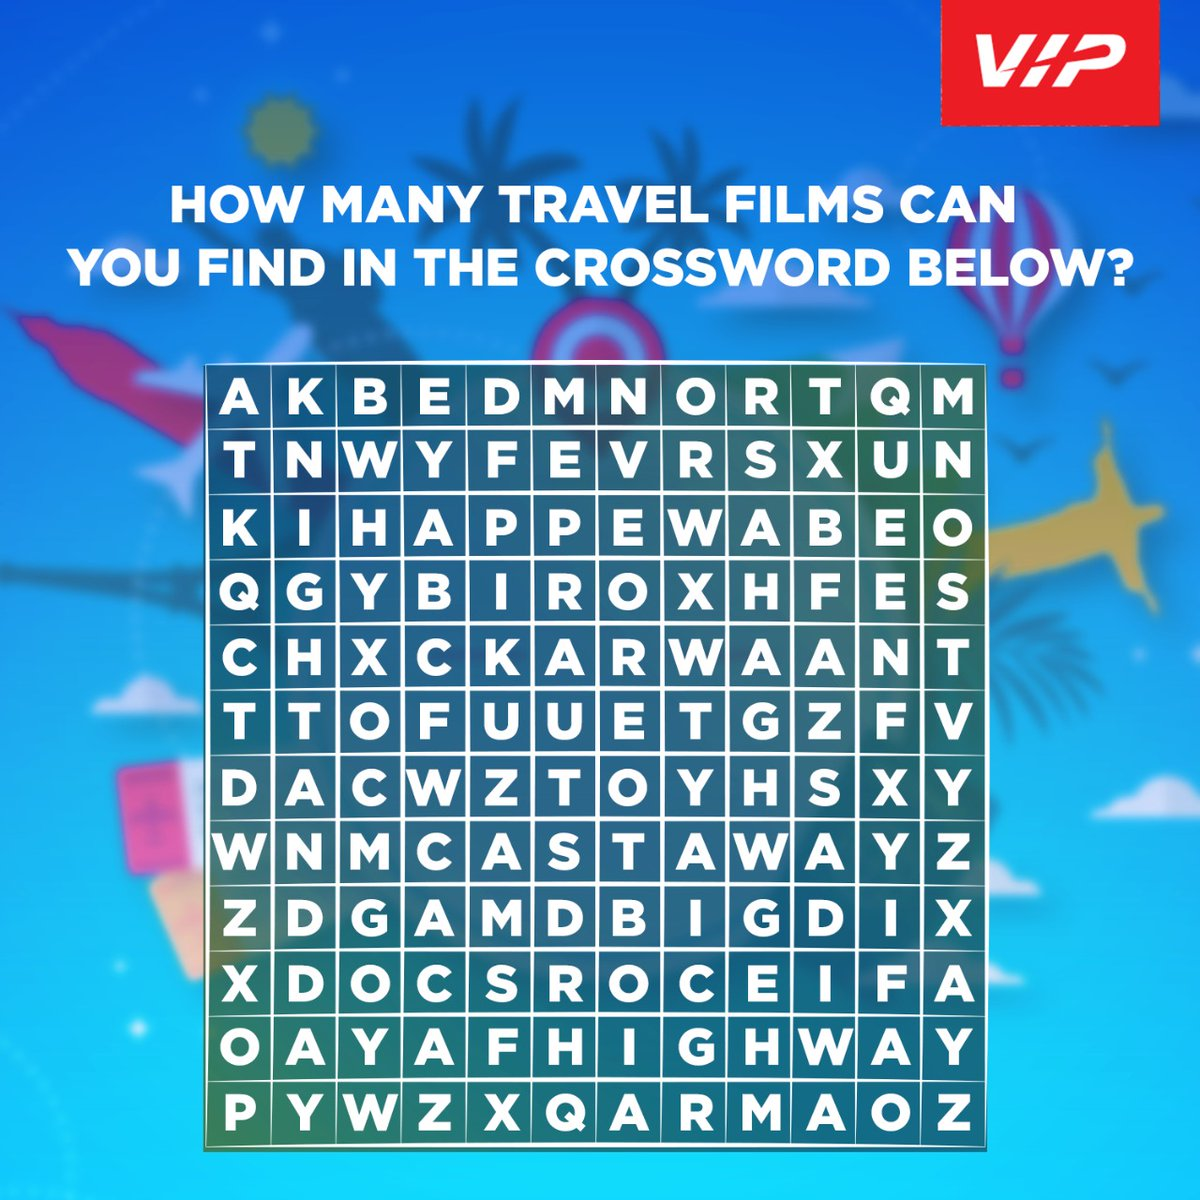 Let's make these #quarantine times a little more fun. Tell us how many travel film titles you see in the crossword puzzle. Retweet with answers and tag your friends! #VIP #StayHome #StaySafepic.twitter.com/w2UAOoDBvM